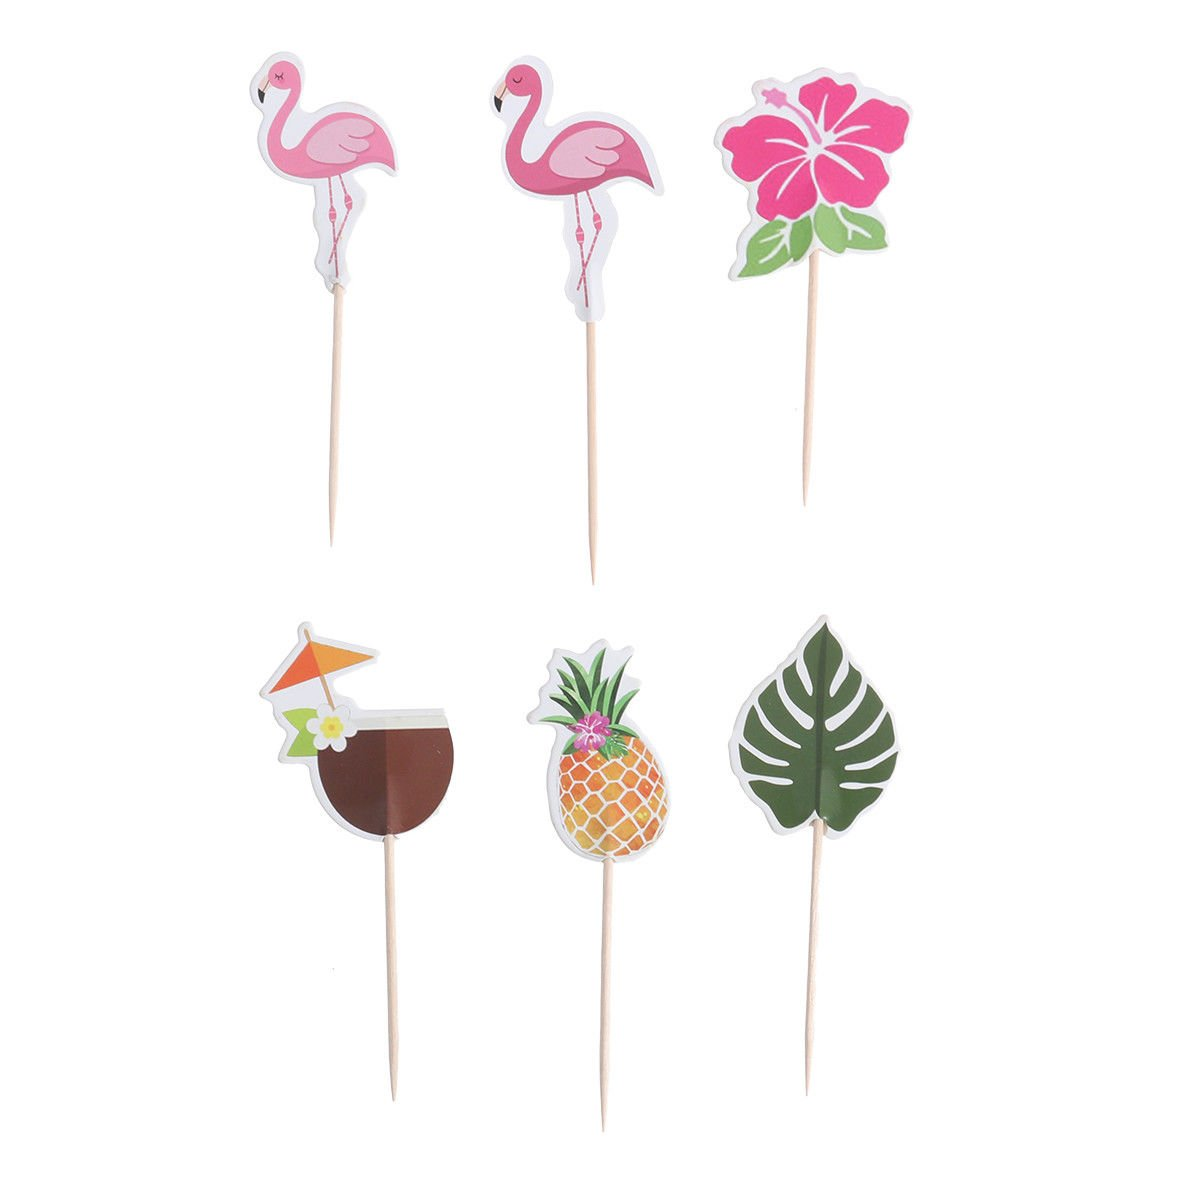 Hawaii Cake Decor Paper Flamingo Pineapple Cake Decor for Birthday Theme Party